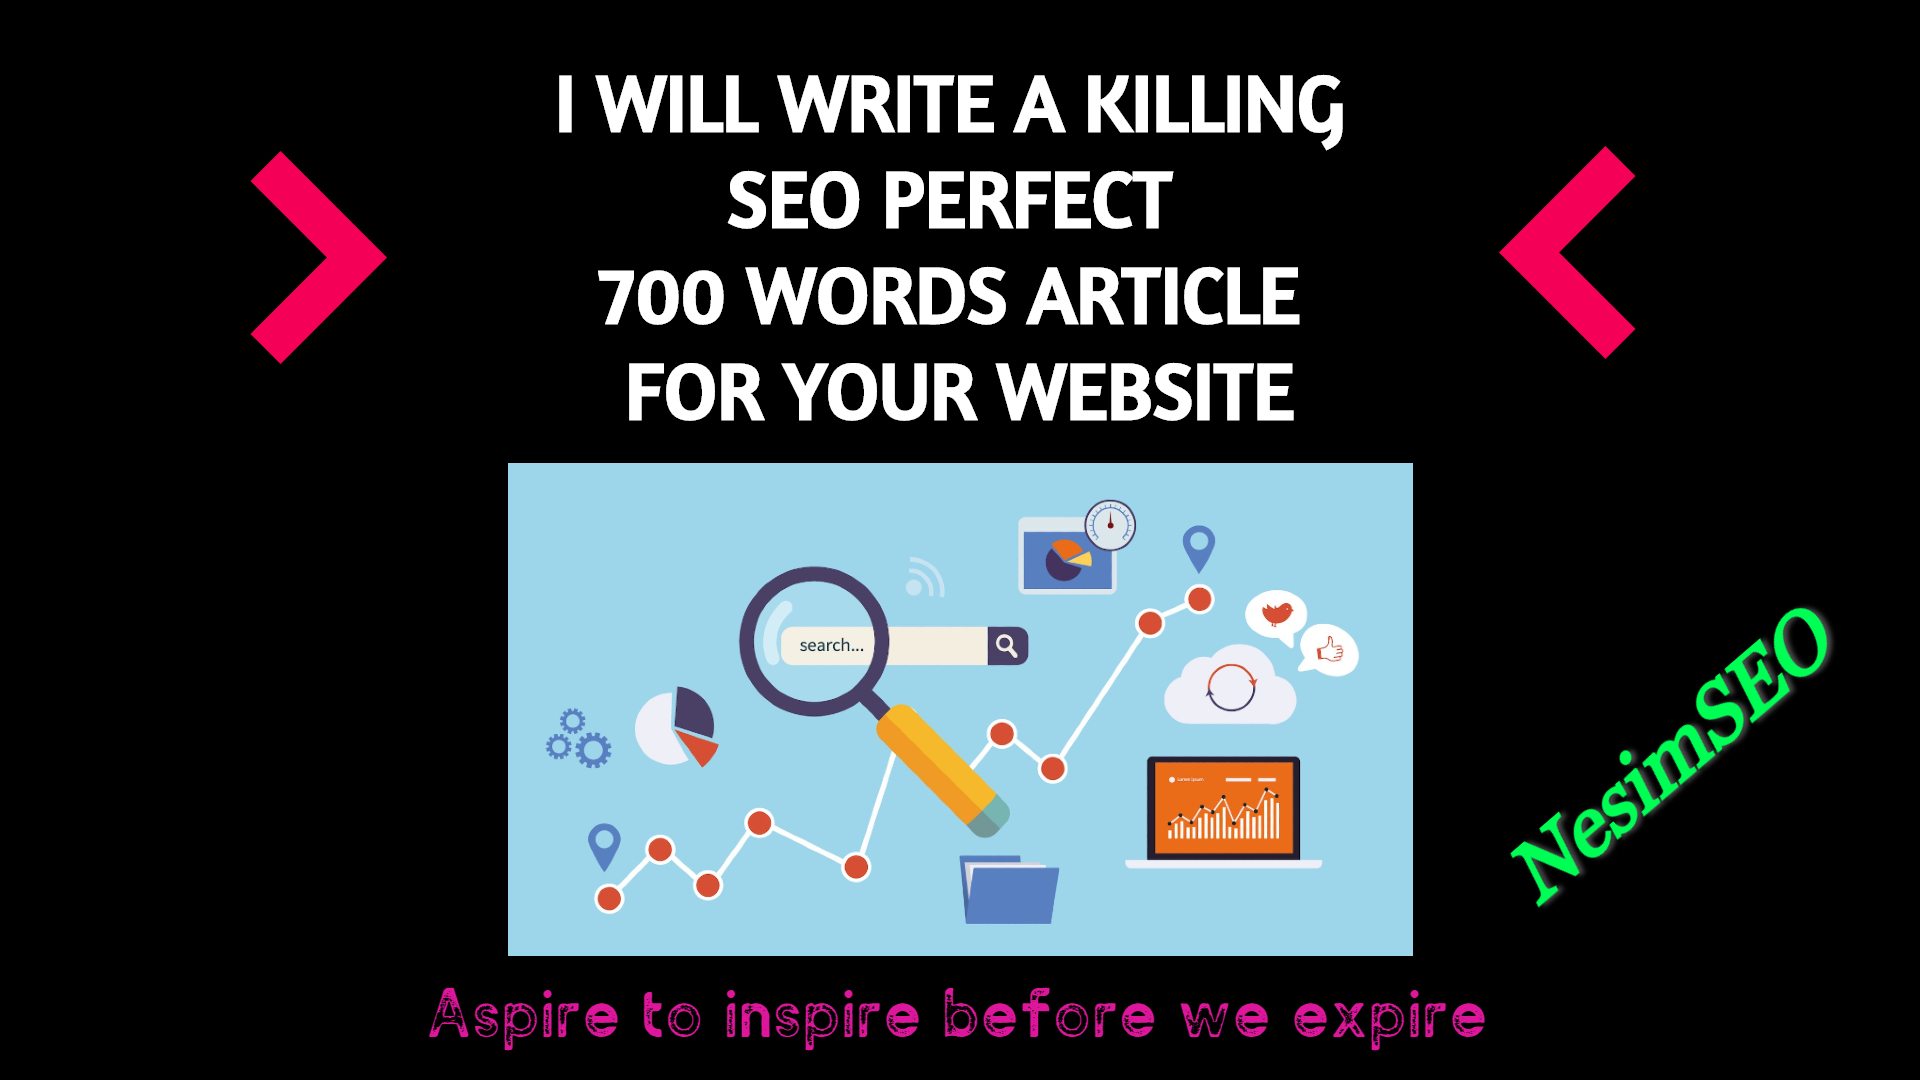 I Will Write A Killing SEO Perfect 700 Words Article For Your Website